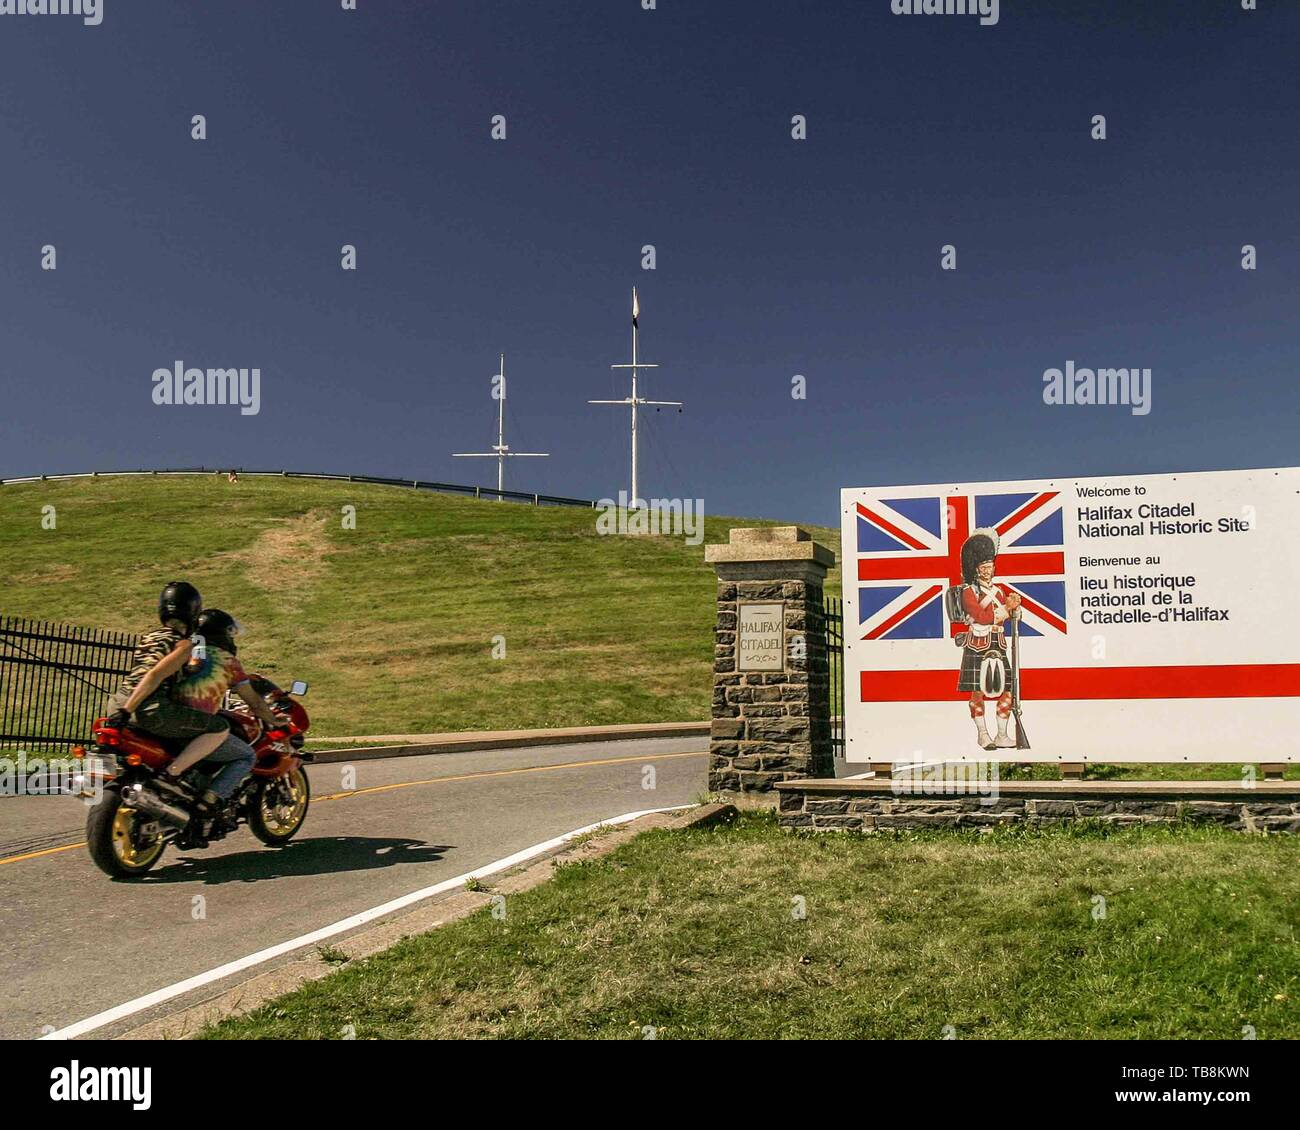 Halifax, Nova Scotia, Canada. 5th Sep, 2005. A tourist couple on a motorbike enter the Halifax Citadel on Citadel Hill (Fort George), a National Historic Site in Halifax, Nova Scotia. A living history museum, the fort is among the most visited sites in Atlantic Canada. Credit: Arnold Drapkin/ZUMA Wire/Alamy Live News - Stock Image